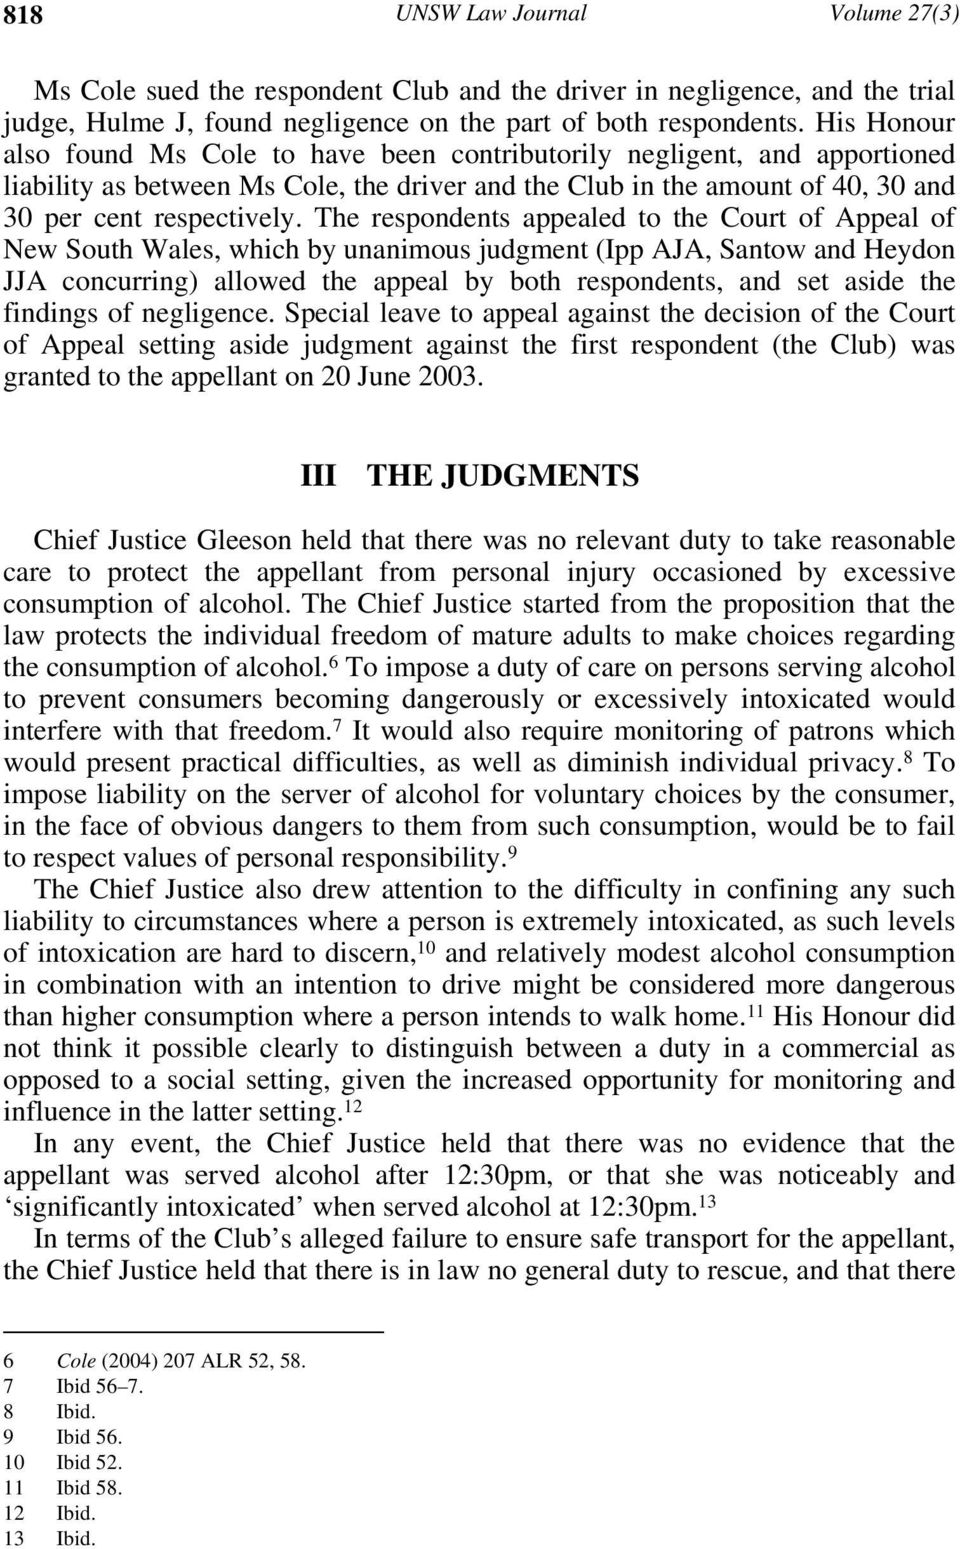 The respondents appealed to the Court of Appeal of New South Wales, which by unanimous judgment (Ipp AJA, Santow and Heydon JJA concurring) allowed the appeal by both respondents, and set aside the